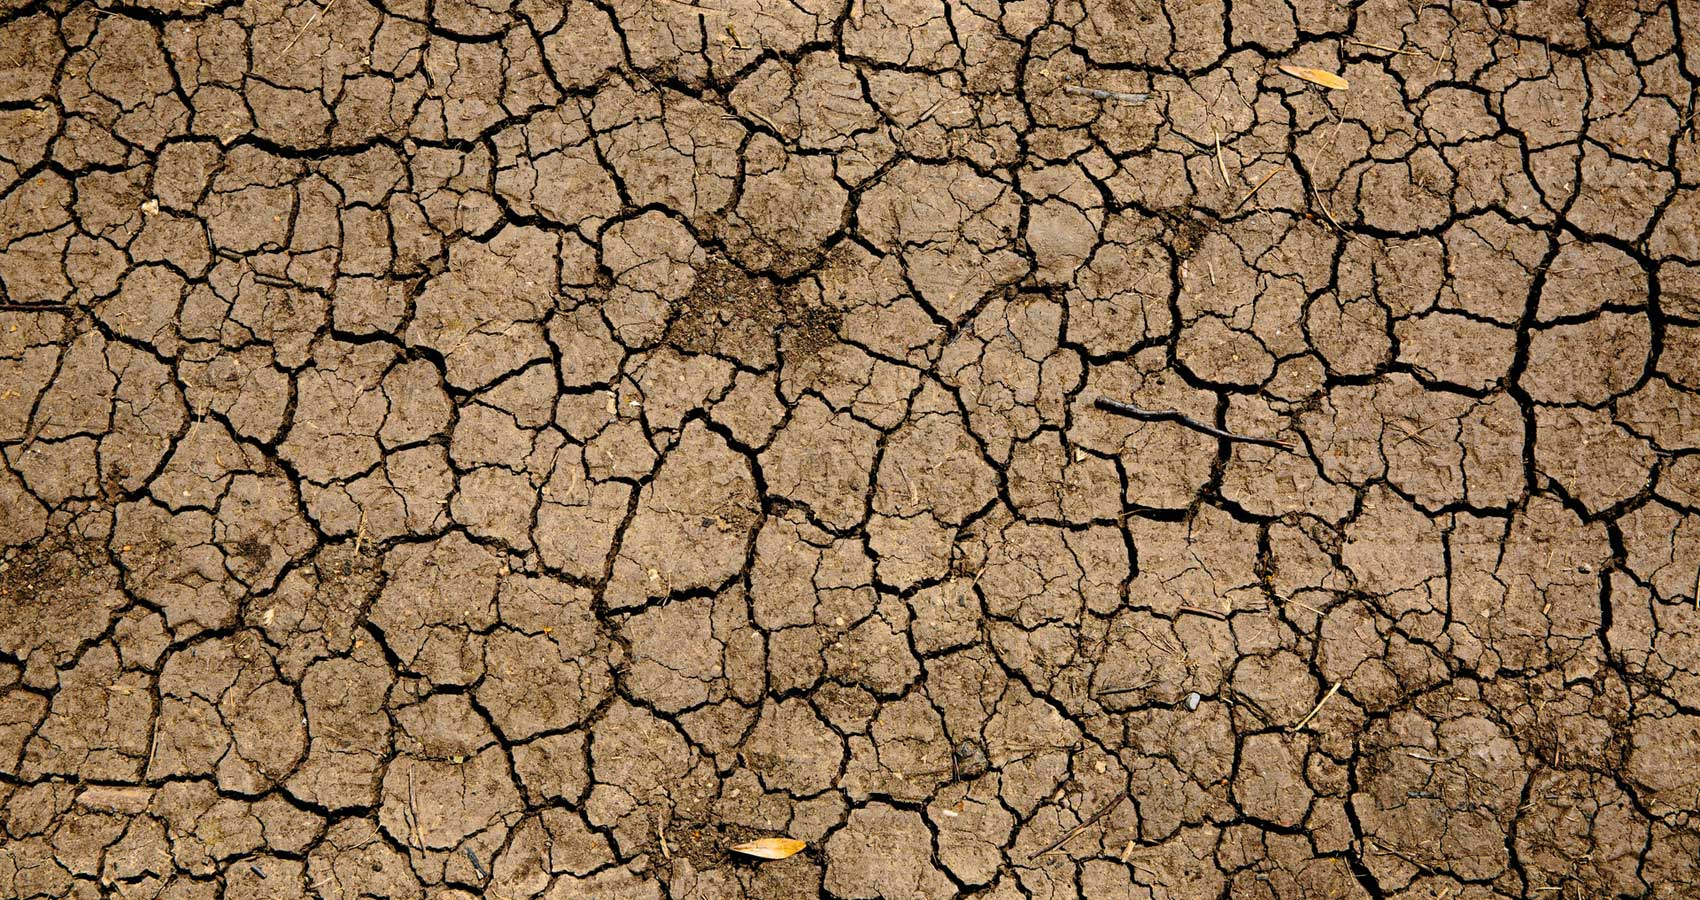 Drought, micropoetry written by Padmini Krishnan at Spillwords.com